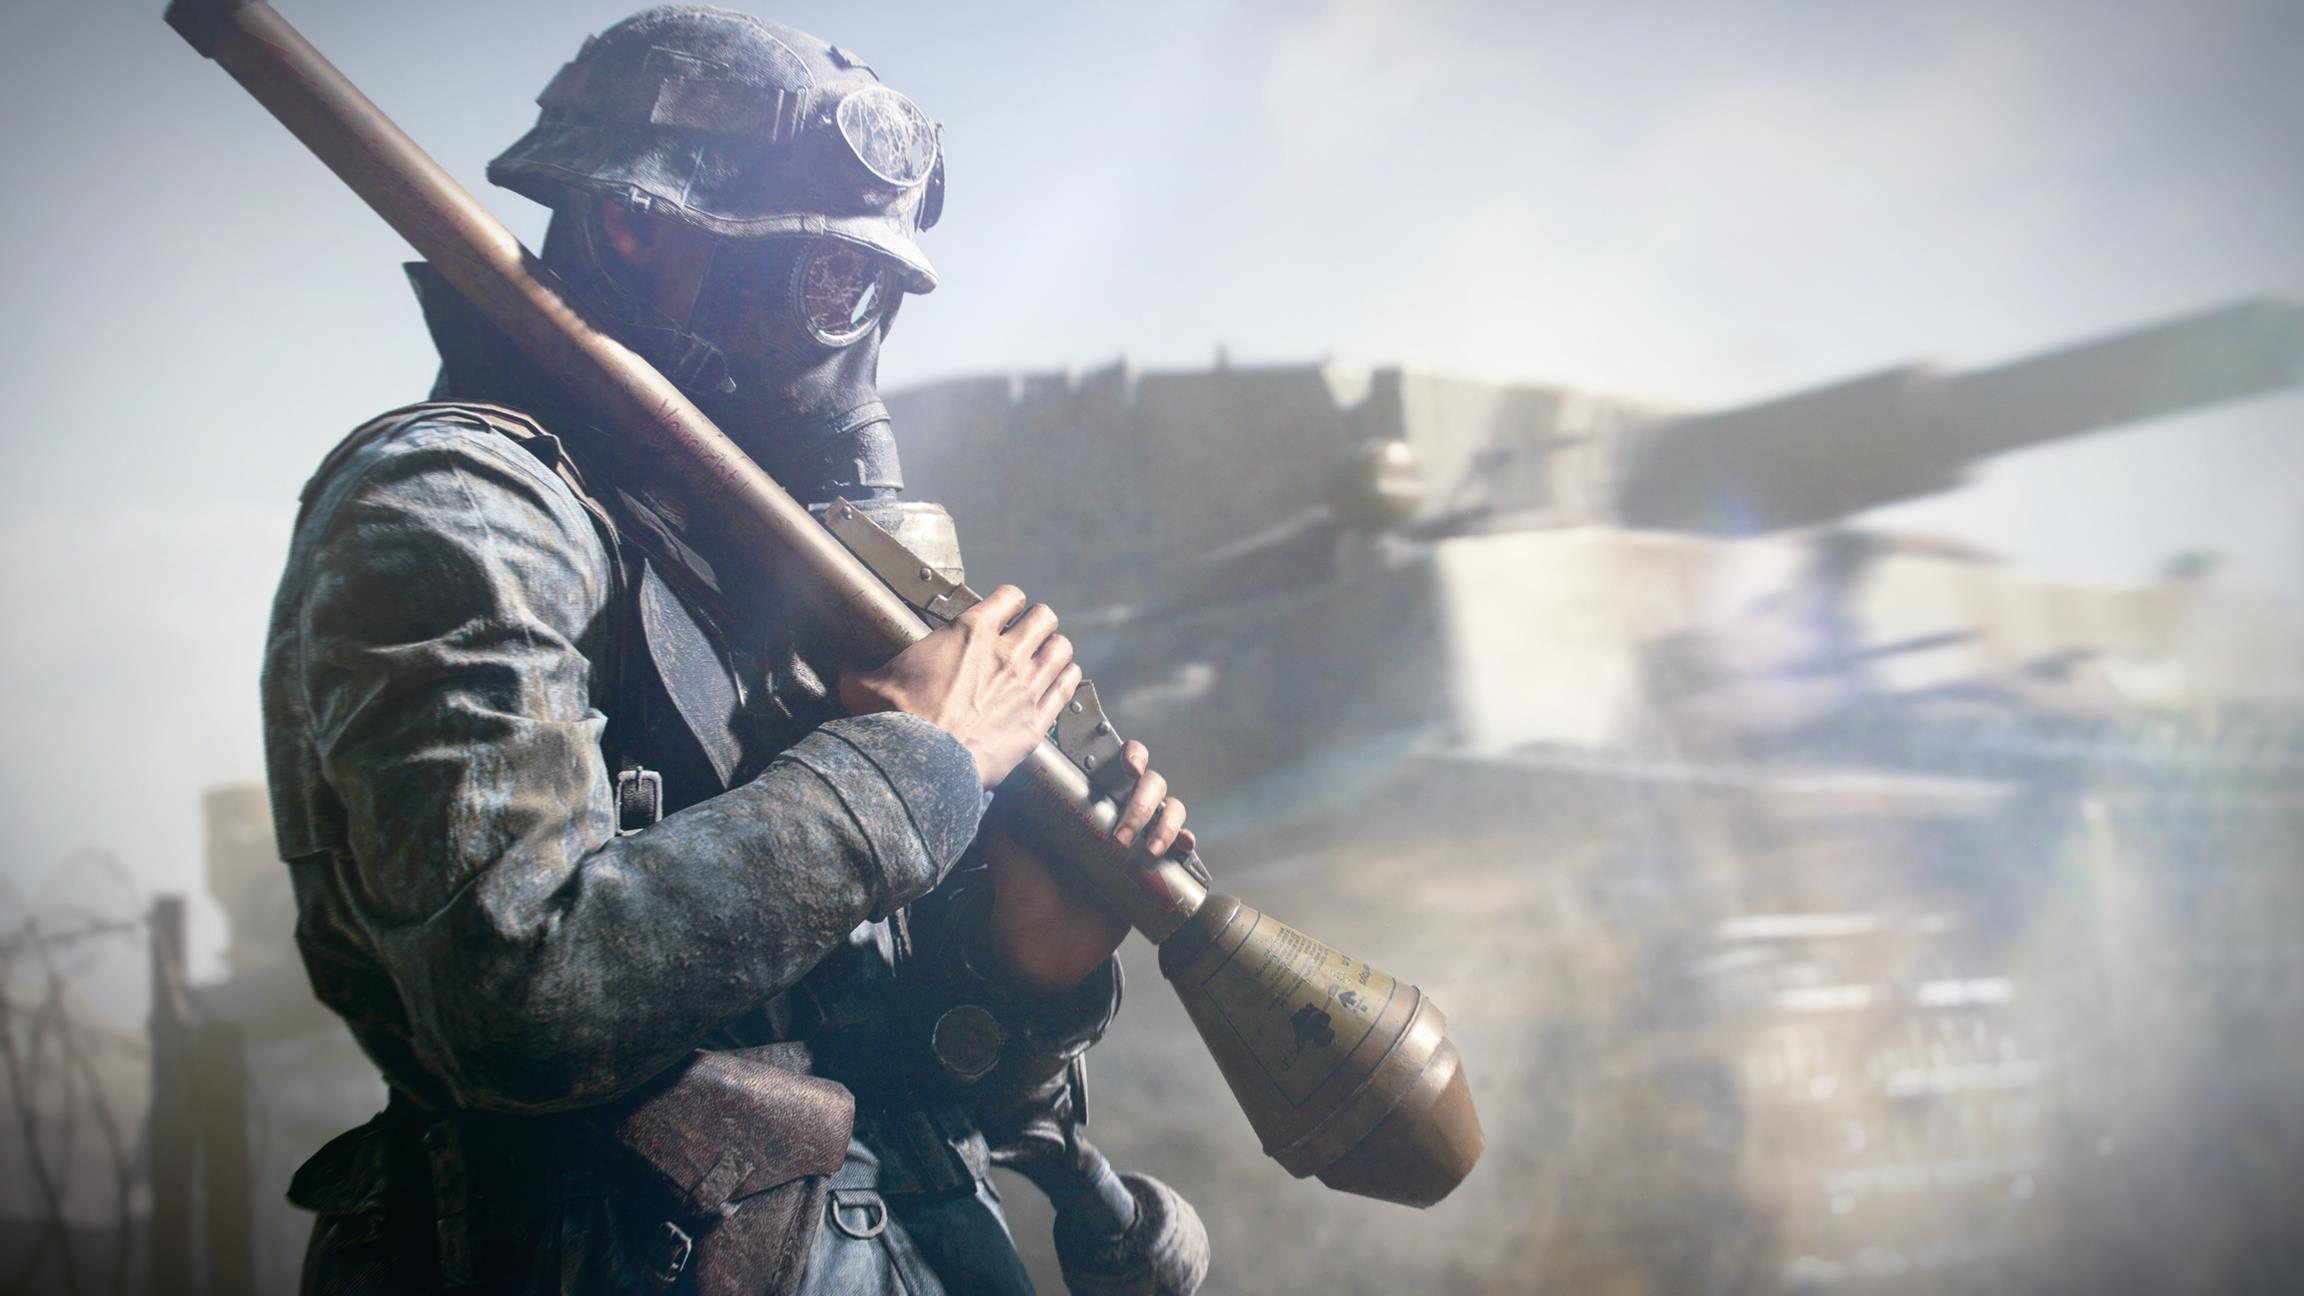 Here's what today's Battlefield 5 update fixed and changed